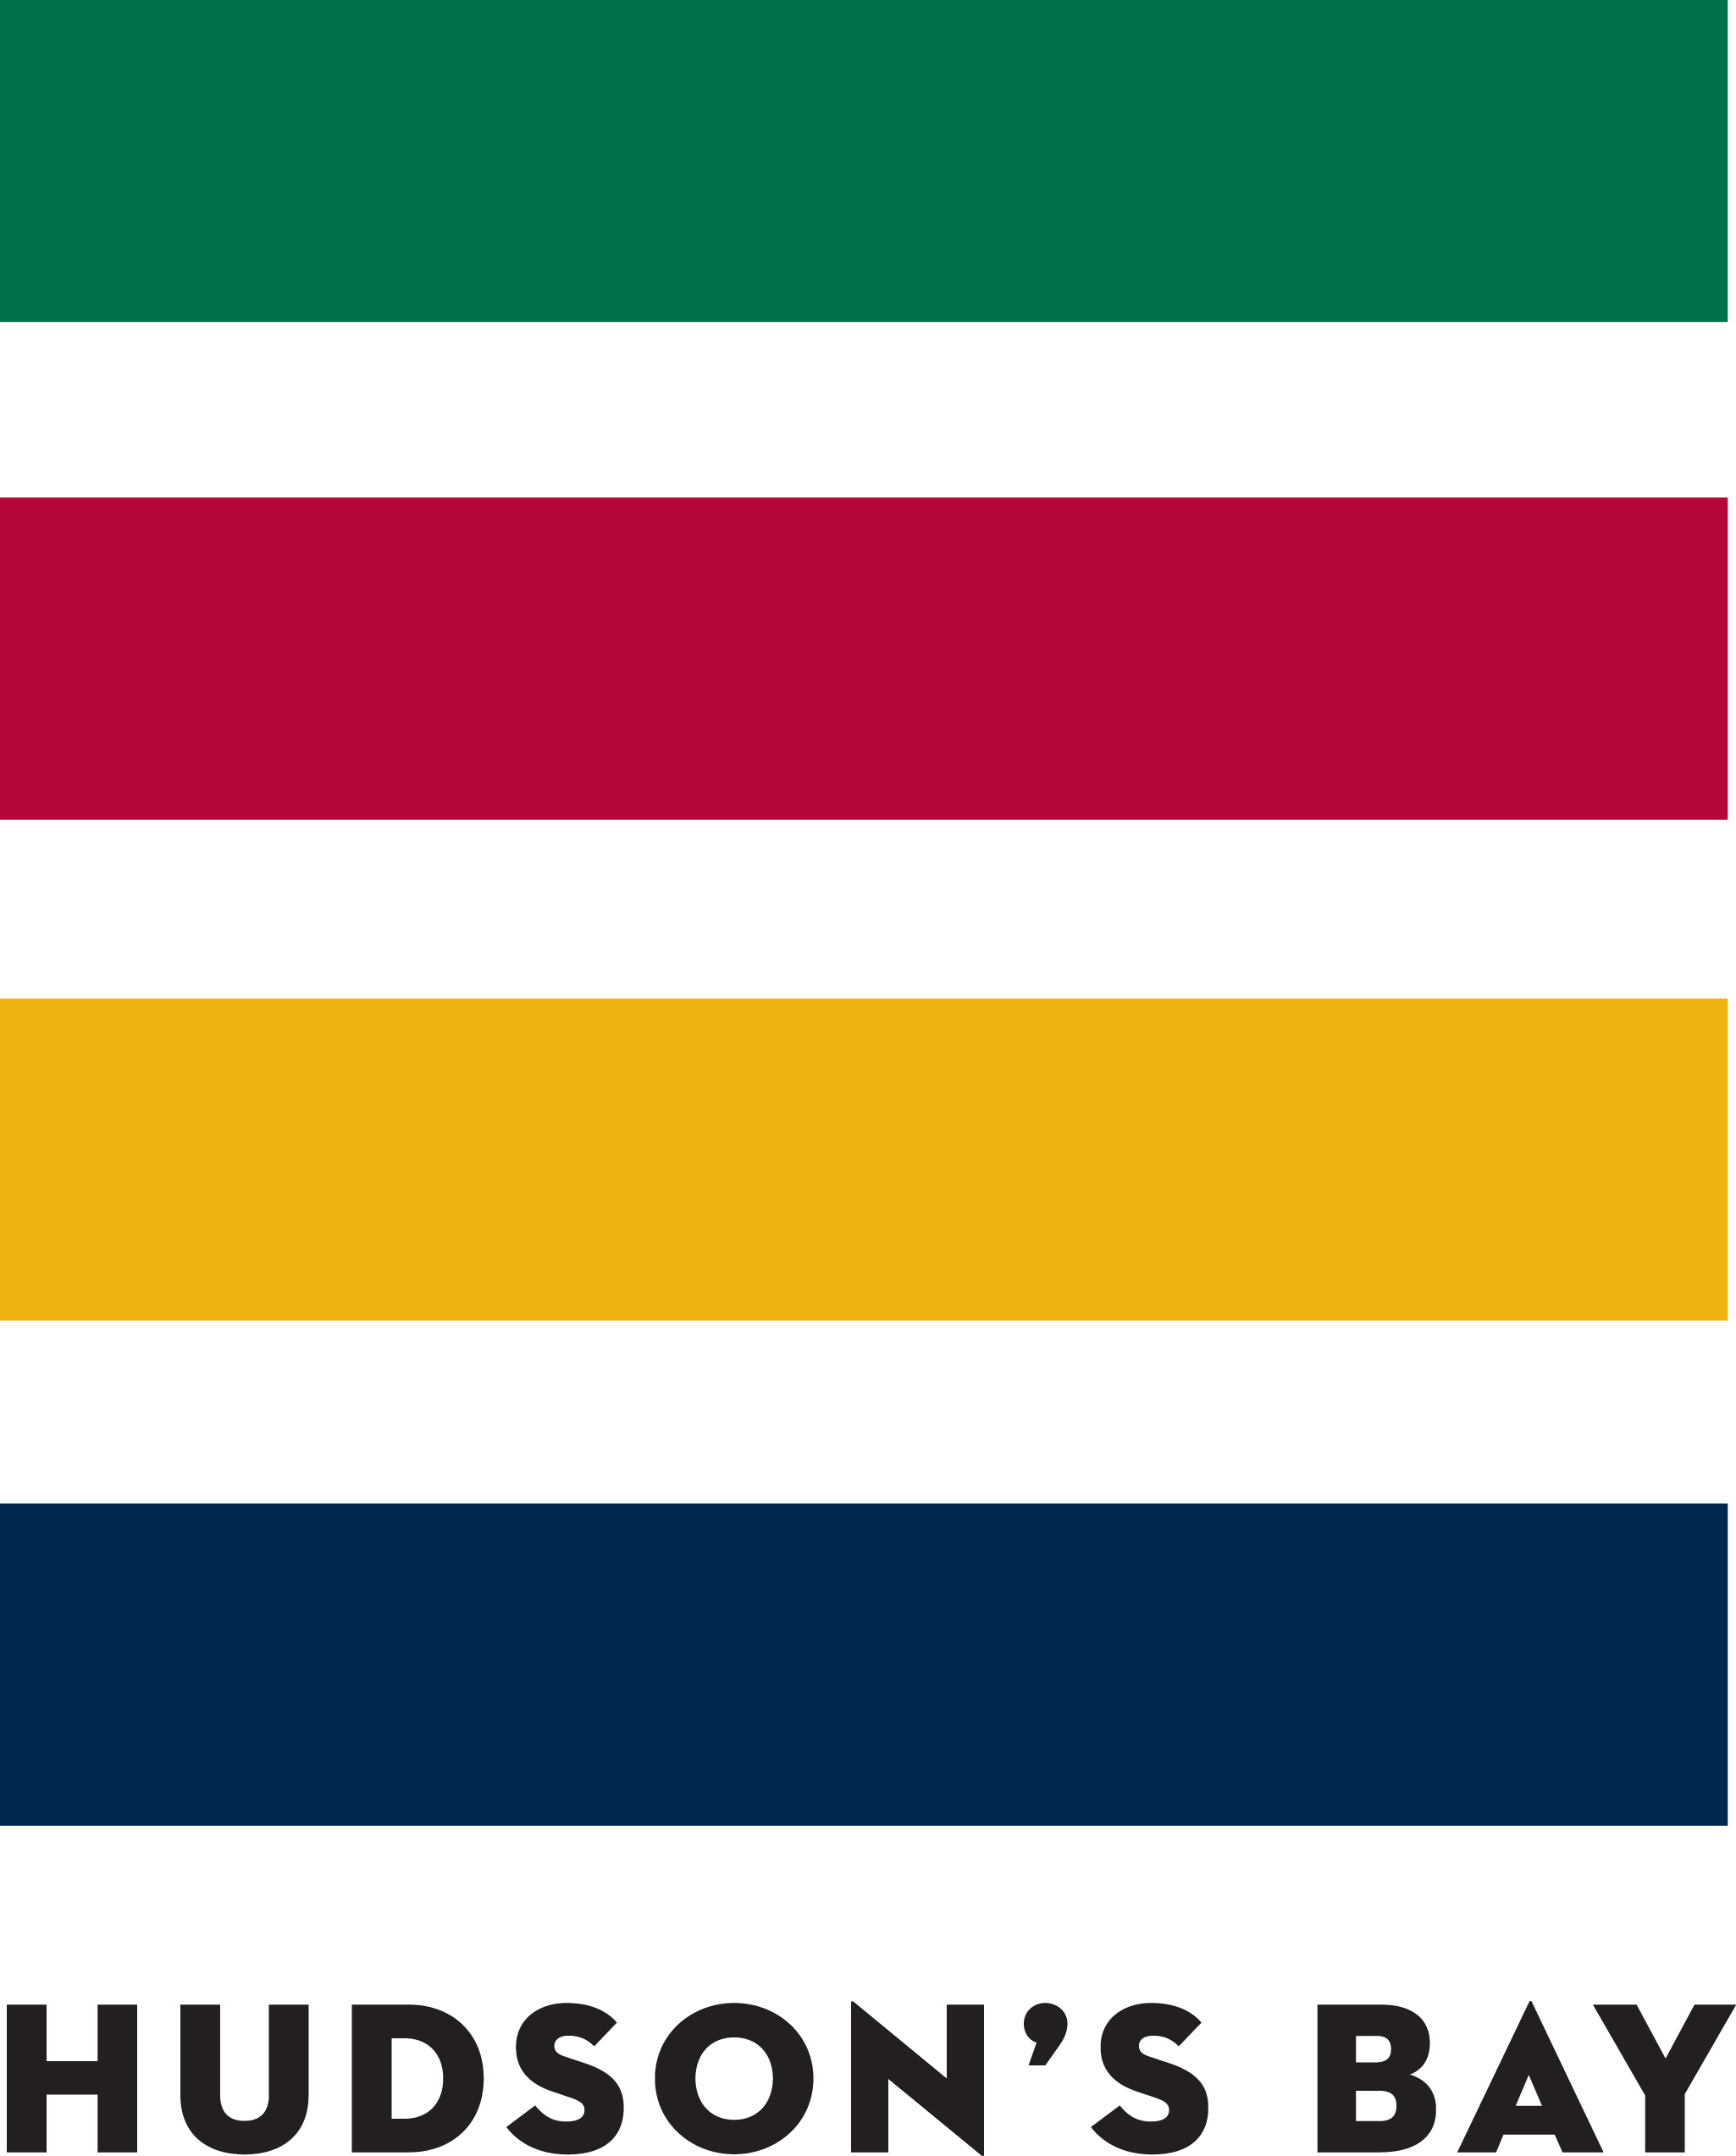 Hudson's Bay Logo - rectangle lines to make a square green at the top followed down by green, yellow and black